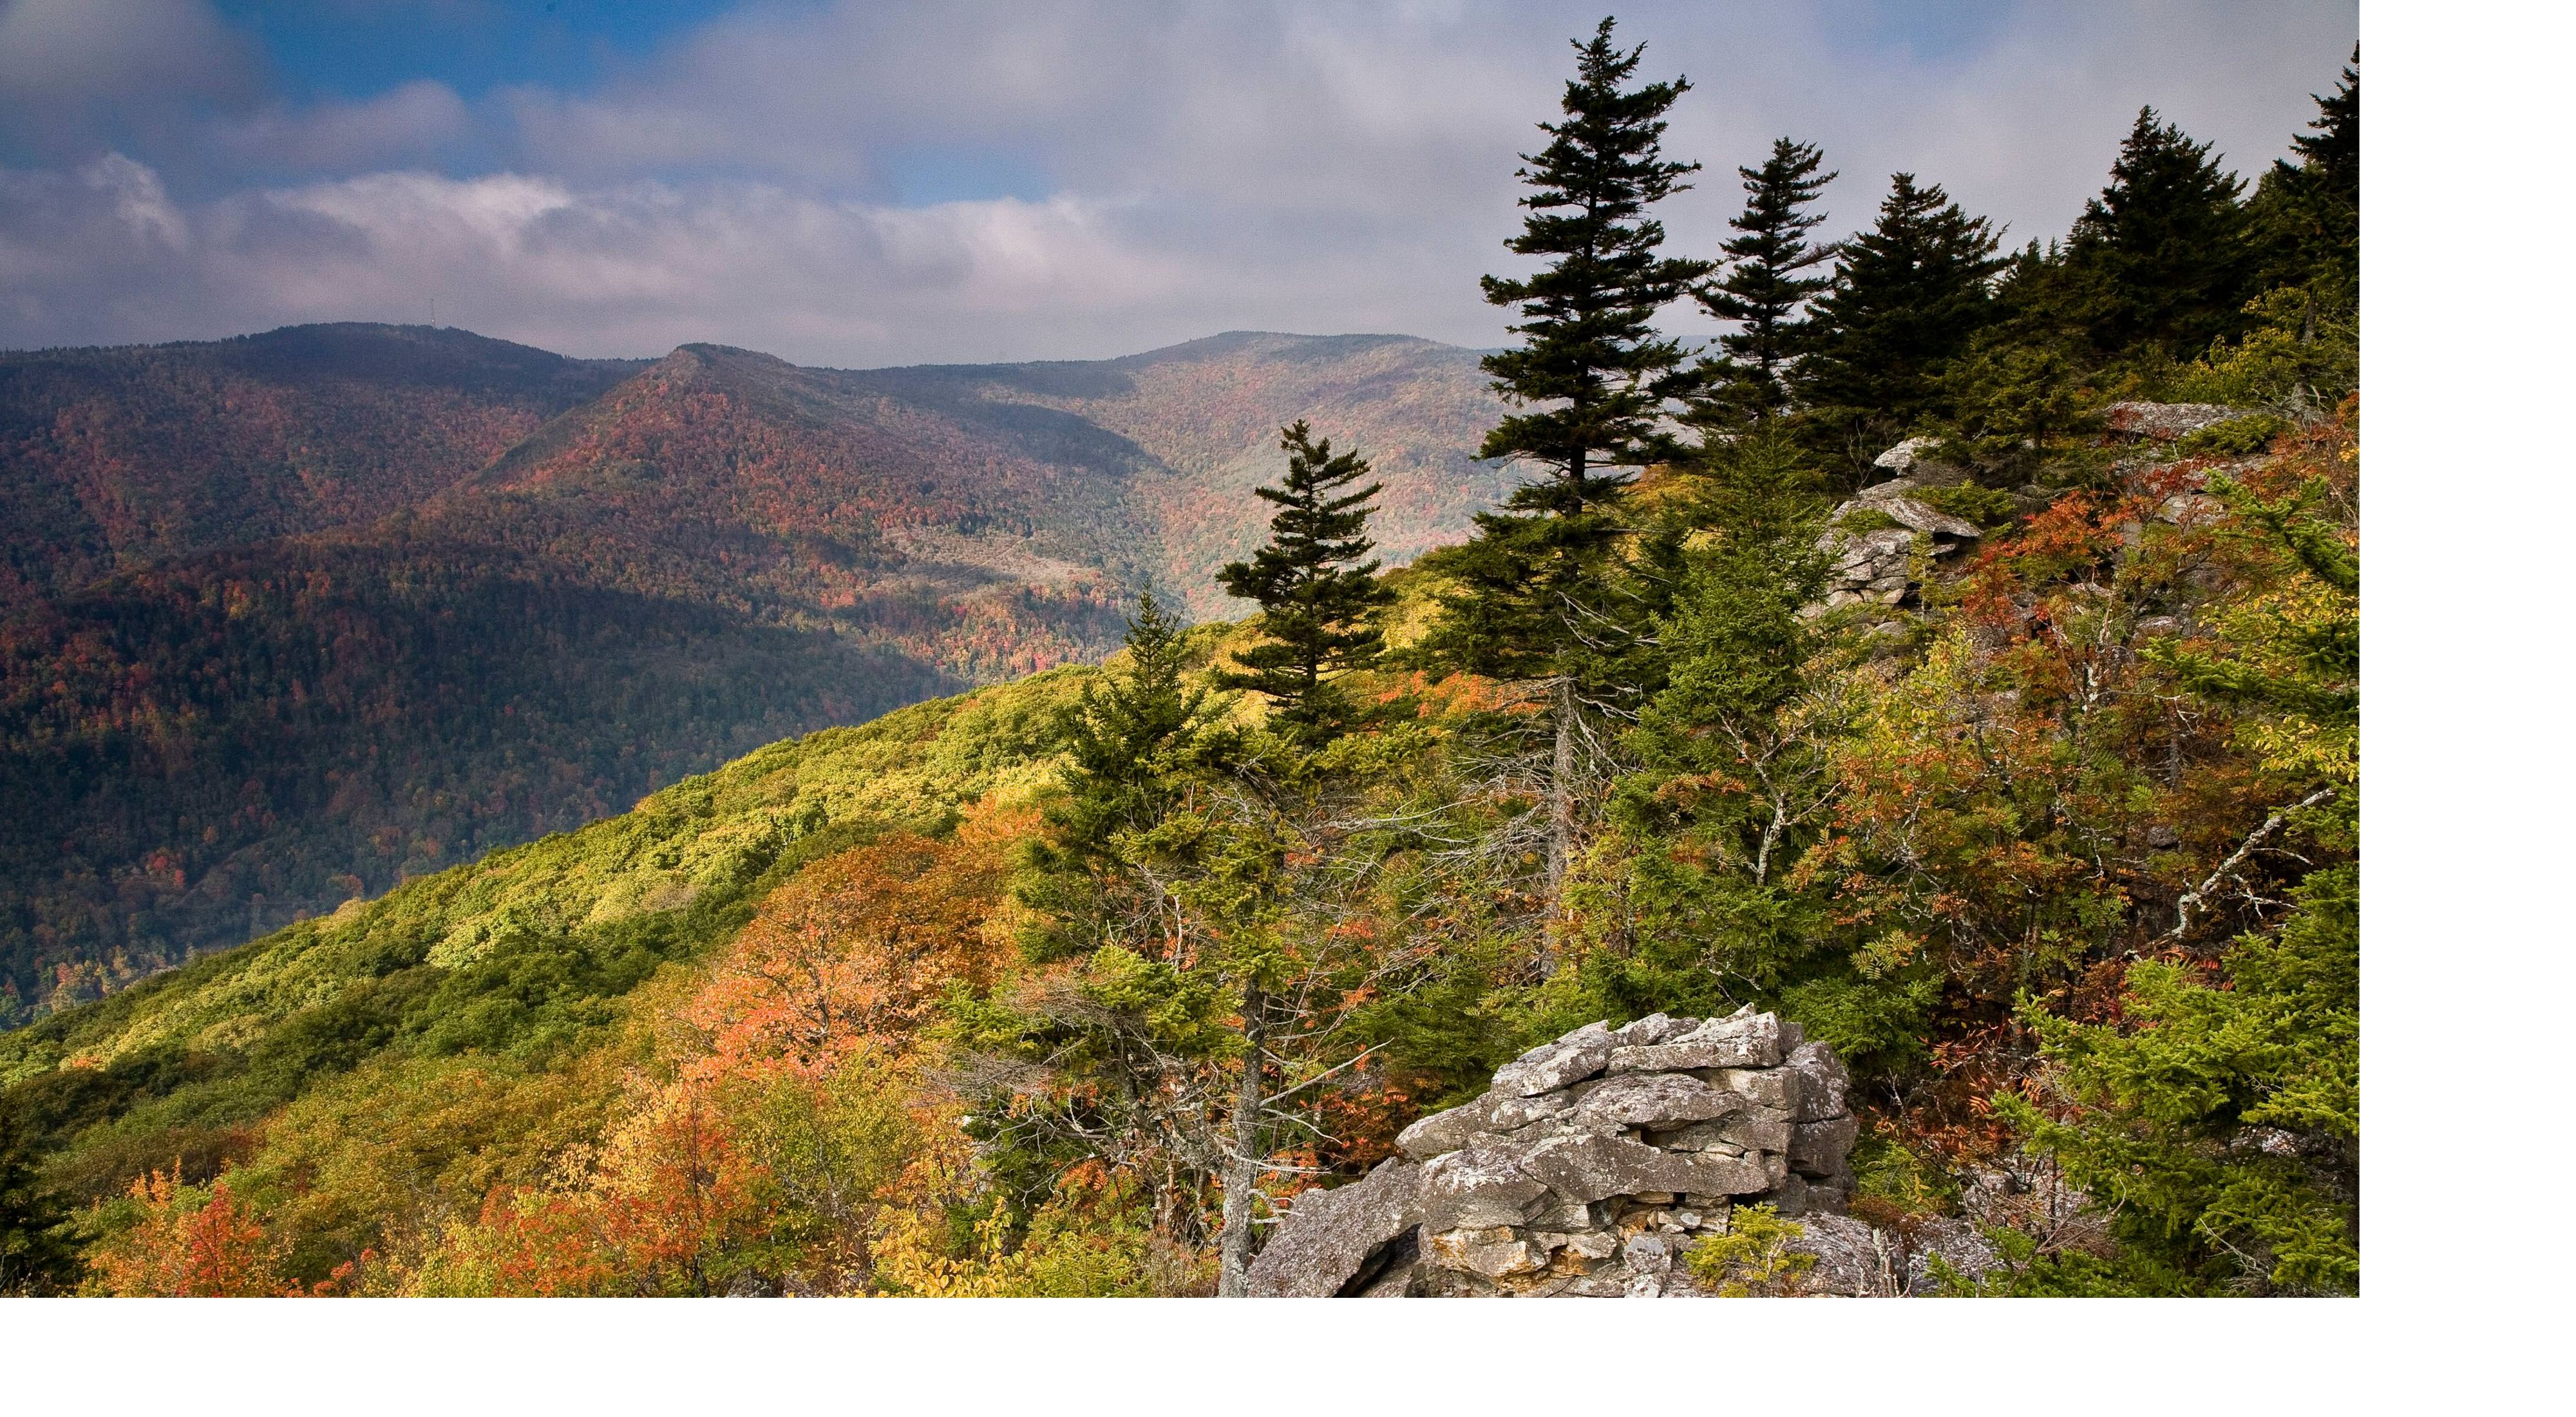 (the sixth-highest point in West Virginia) from the trail at the Roaring Plains West Wilderness in the Monongahela National Forest.